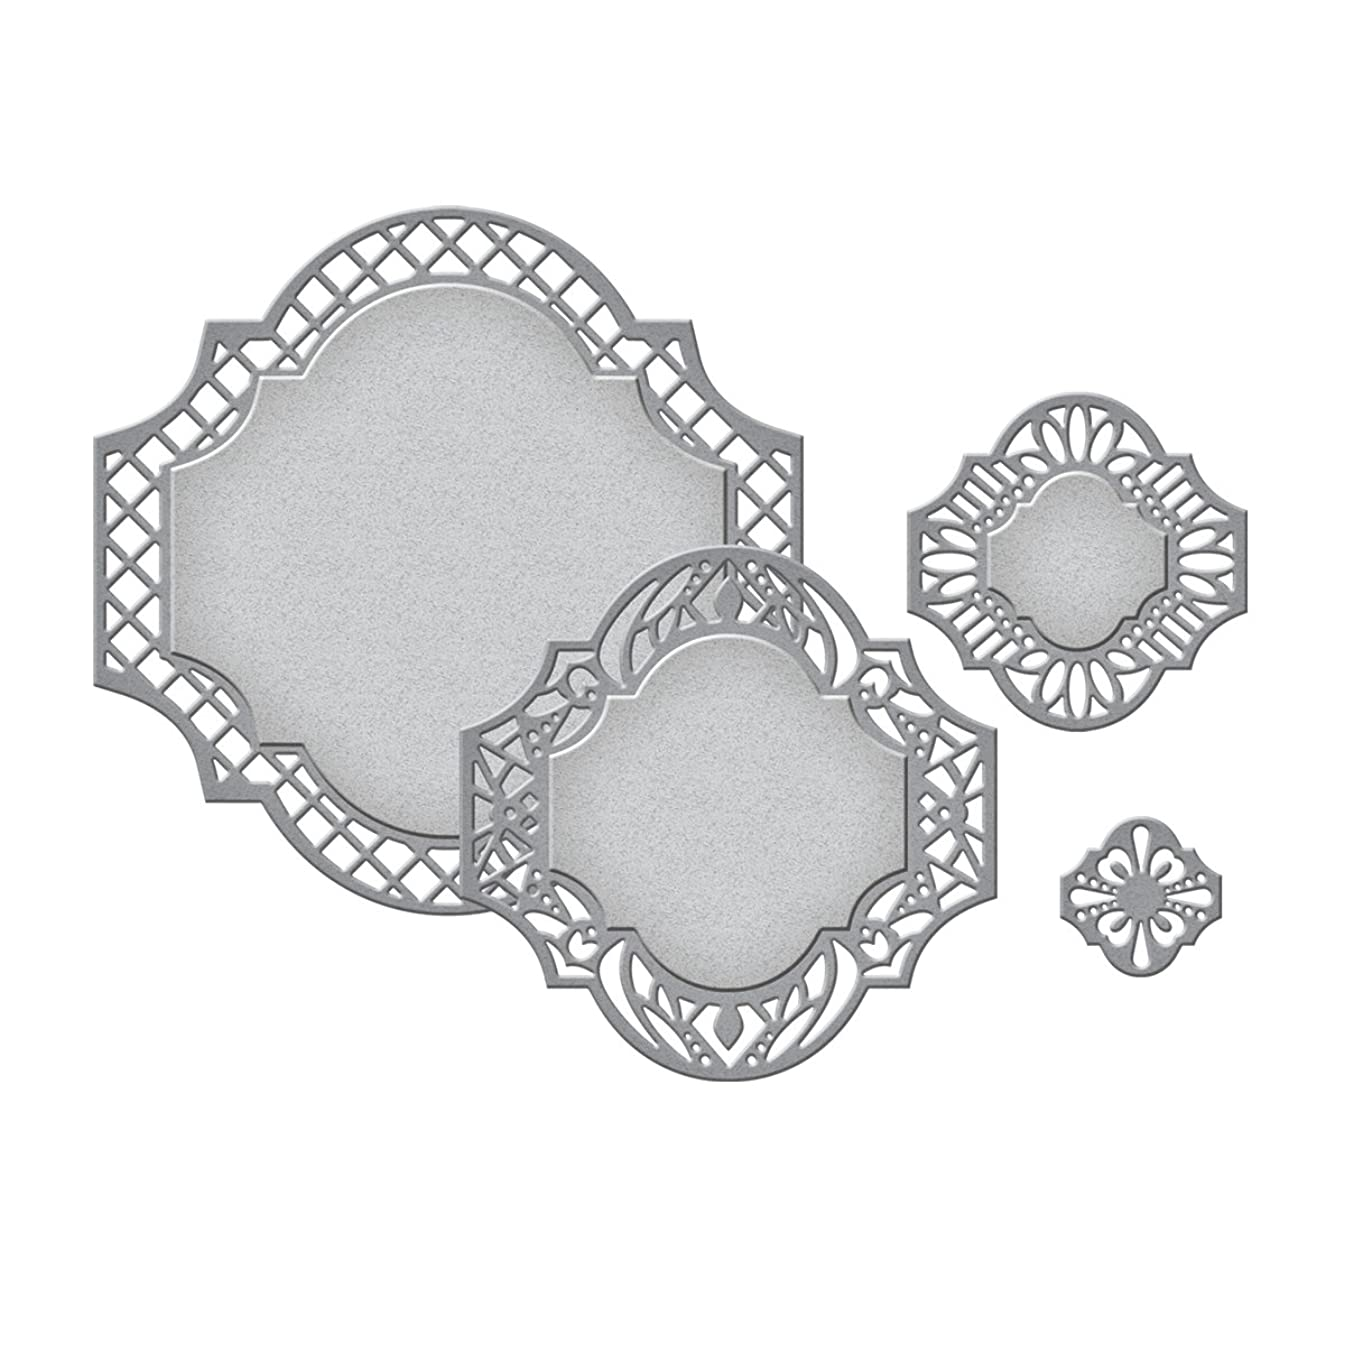 Spellbinders S4-470 Nestabilities Labels Forty-One Decorative Elements Etched/Wafer Thin Dies